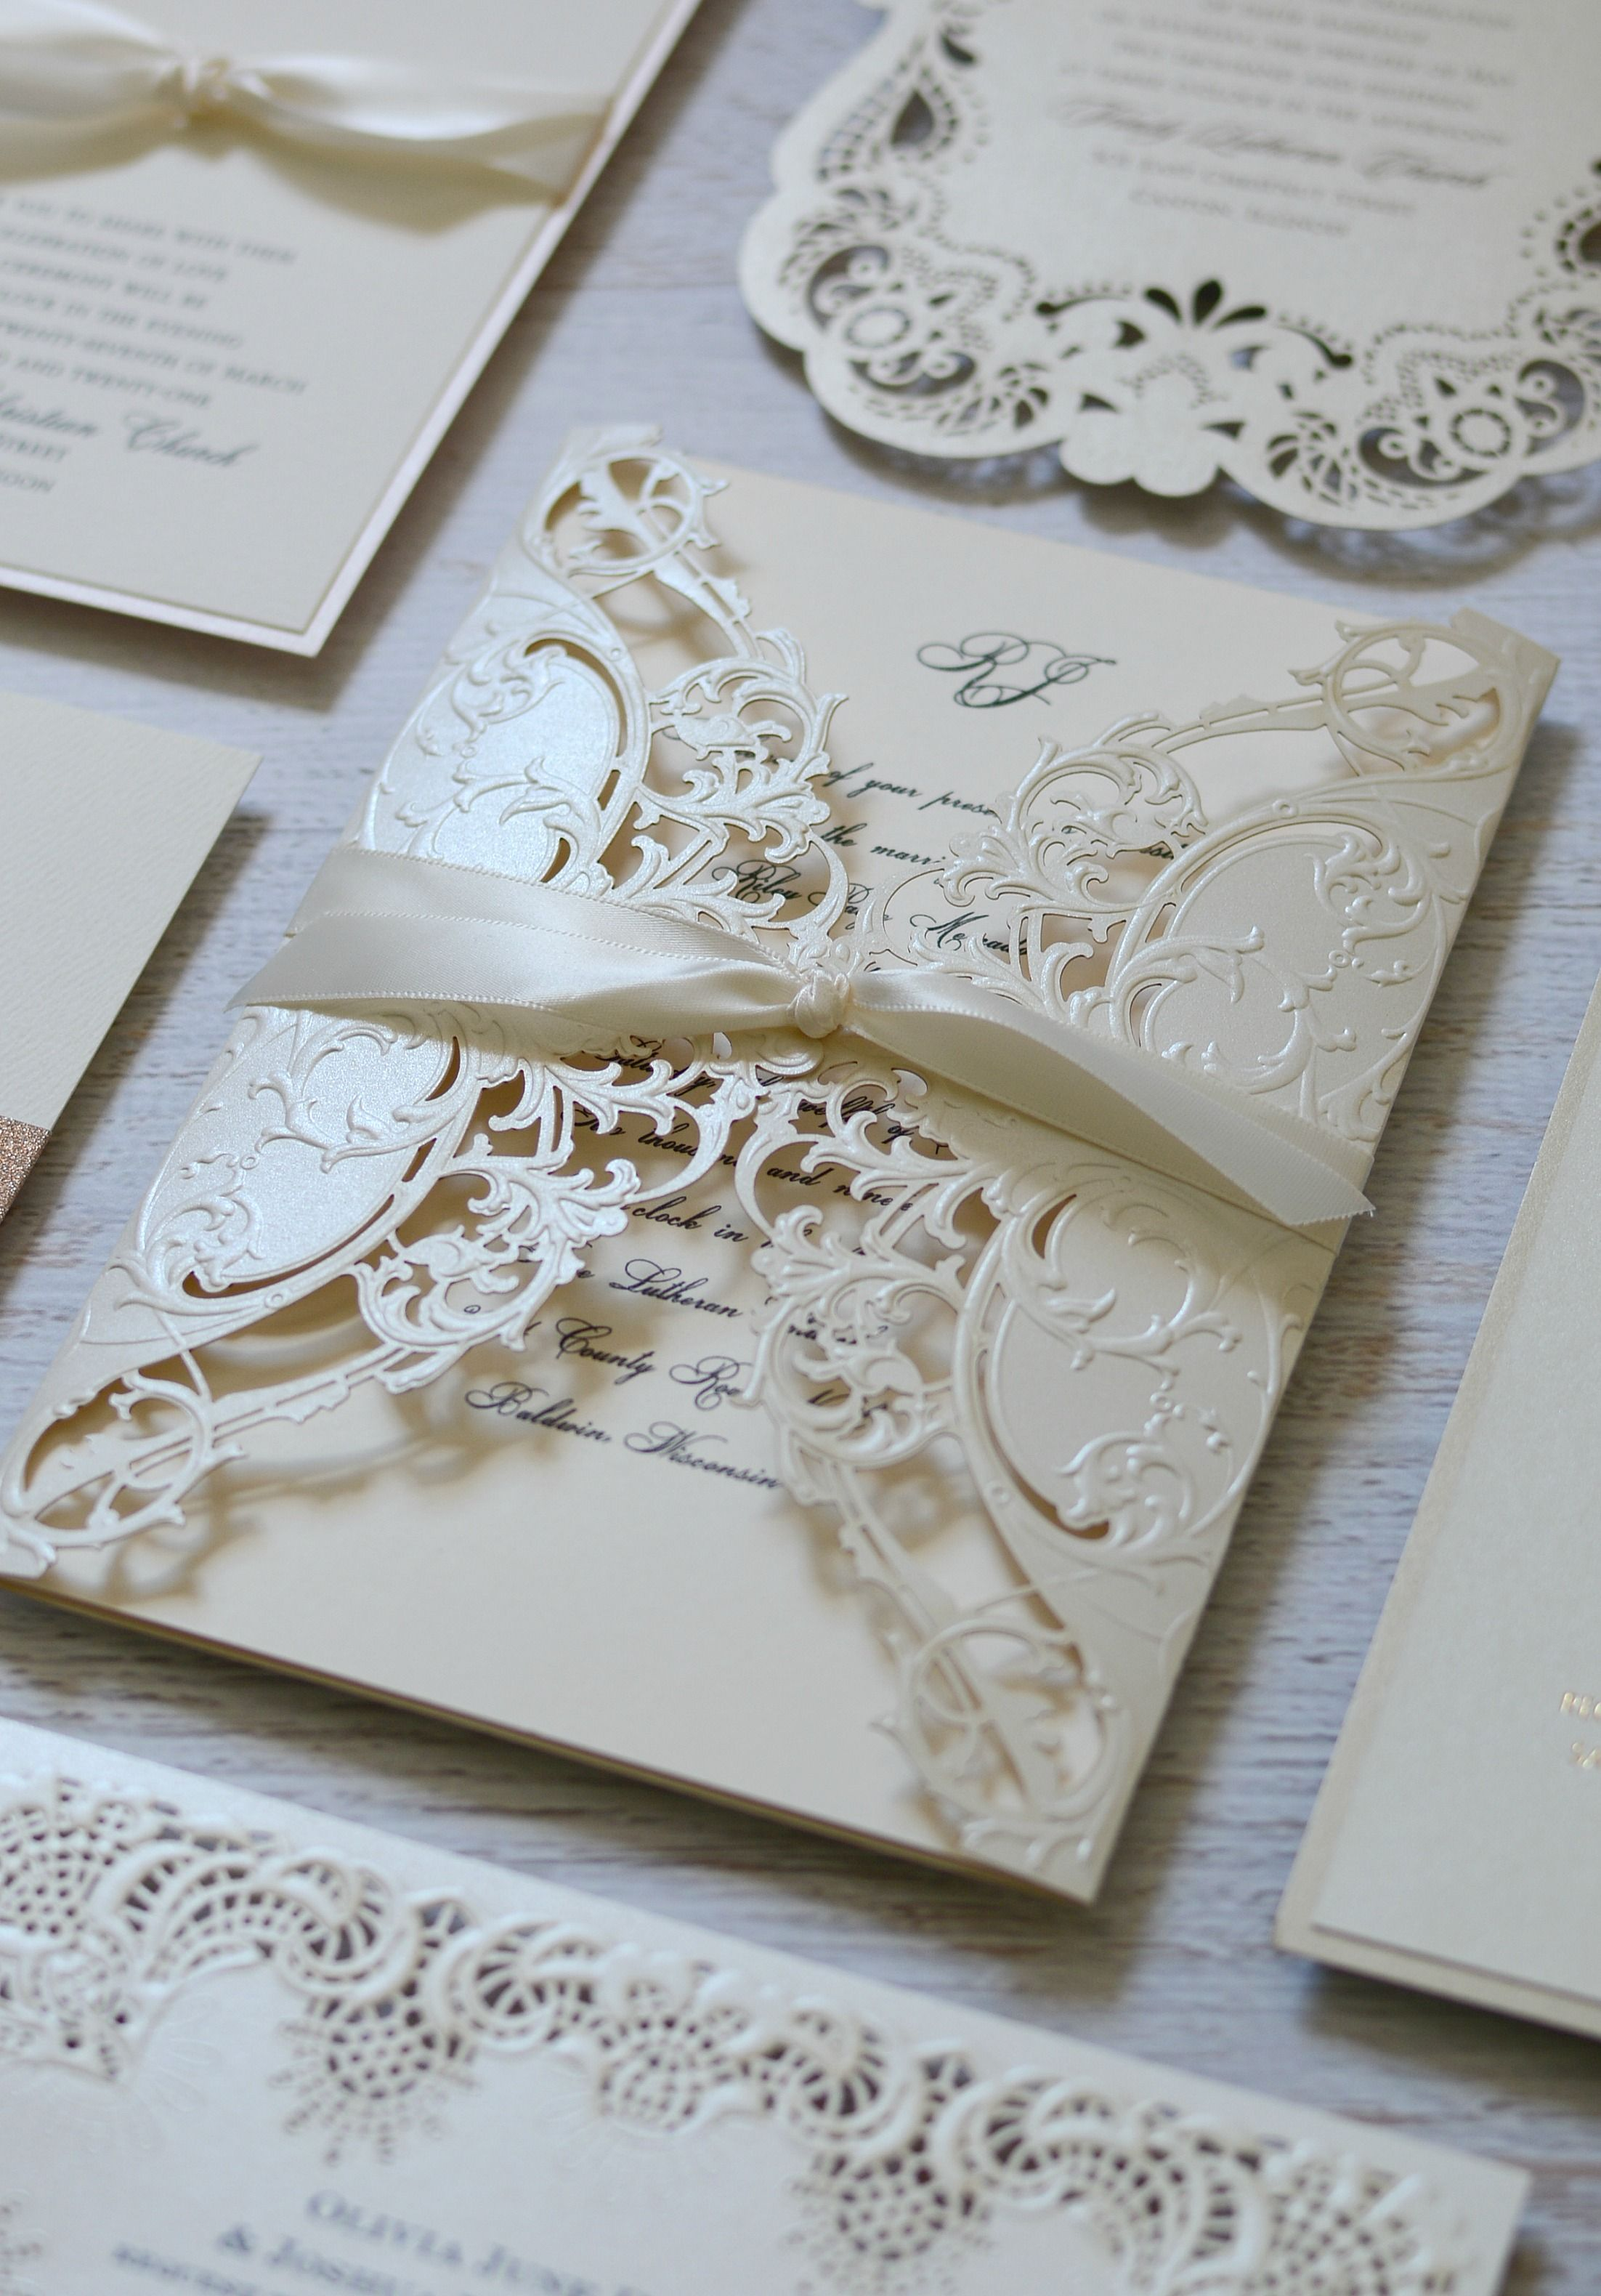 how to emboss wedding invitations diy%0A Your wedding invitation sets the tone for the biggest day of your life  Do  it